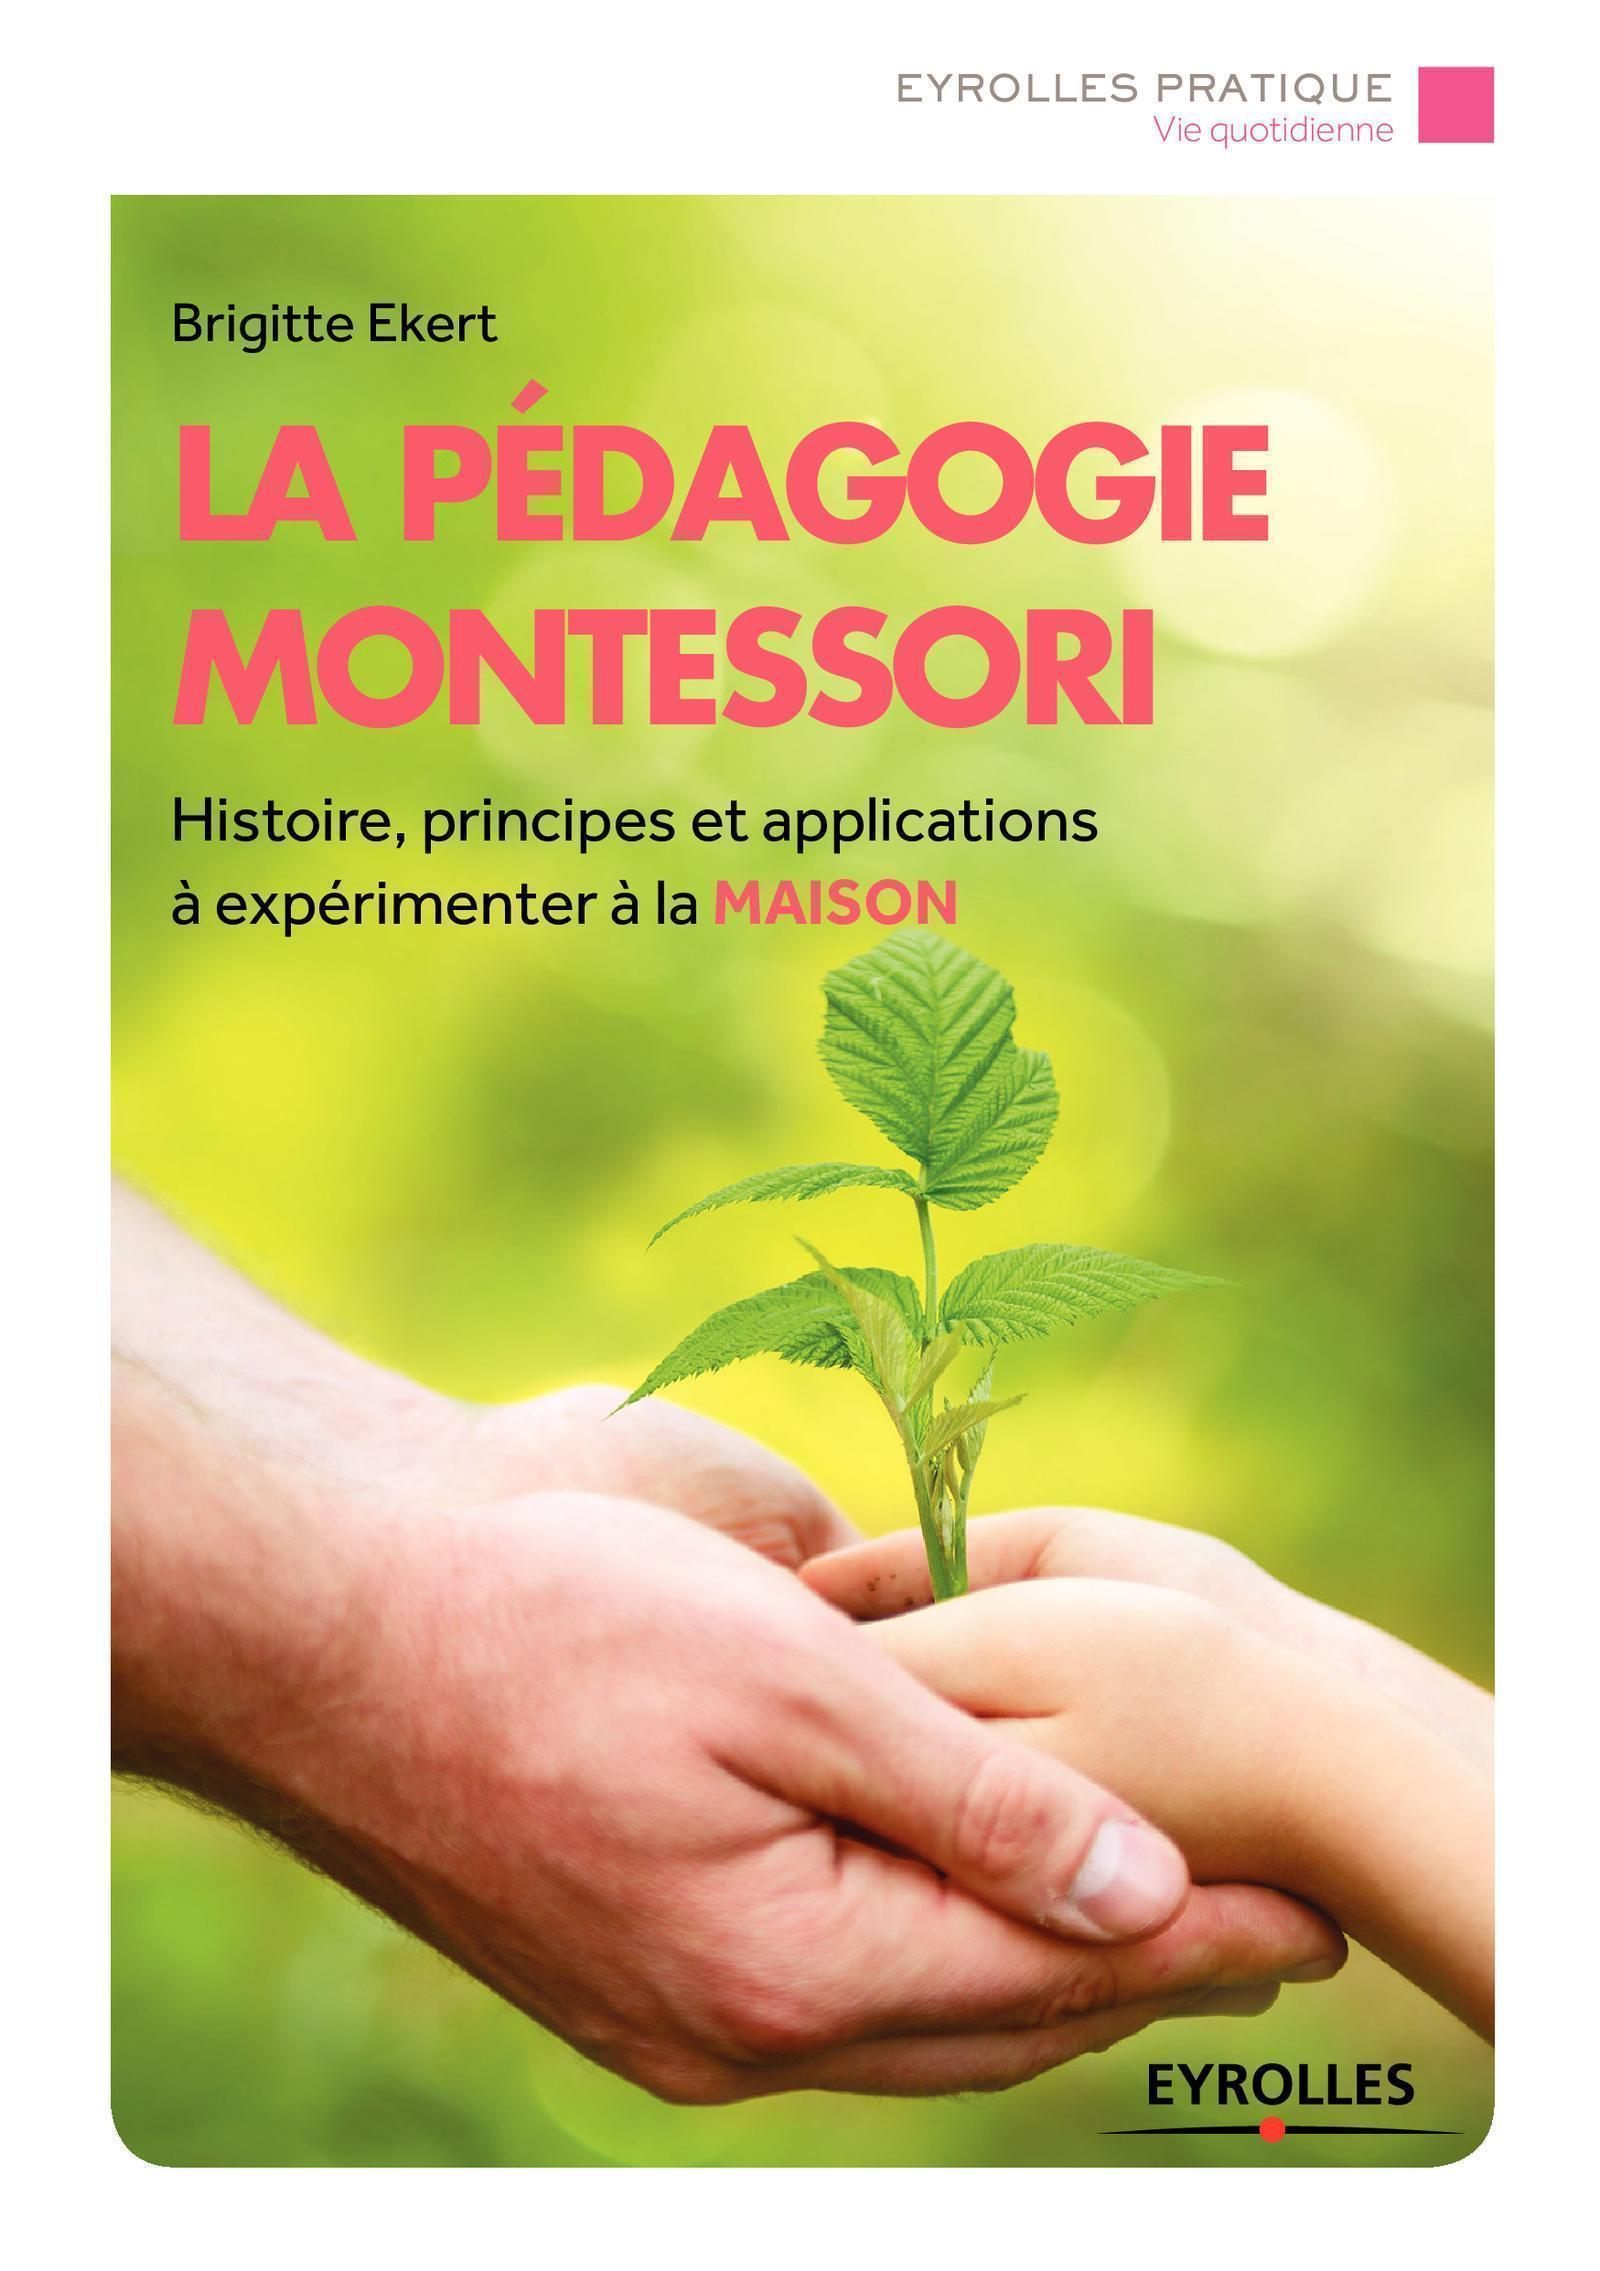 LA PEDAGOGIE MONTESSORI HISTOIRE, PRINCIPES, APPLICATIONS A EXPERIMENTER A LA MAISON